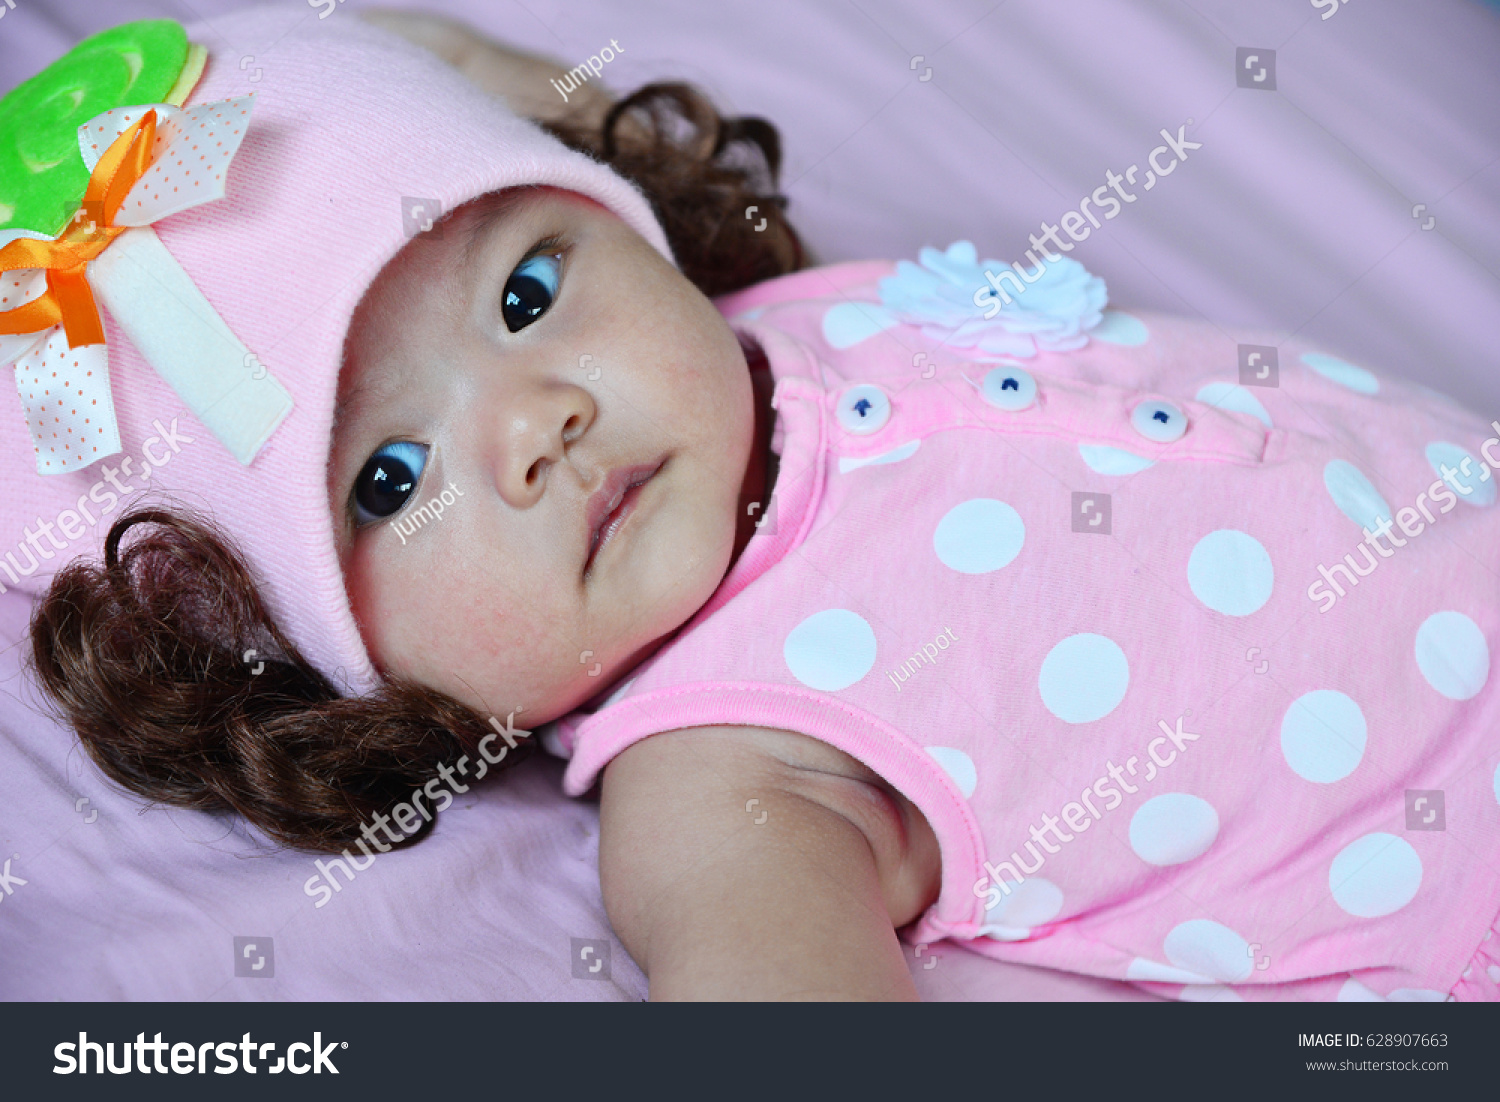 little cute baby girl pink dress stock photo (100% legal protection